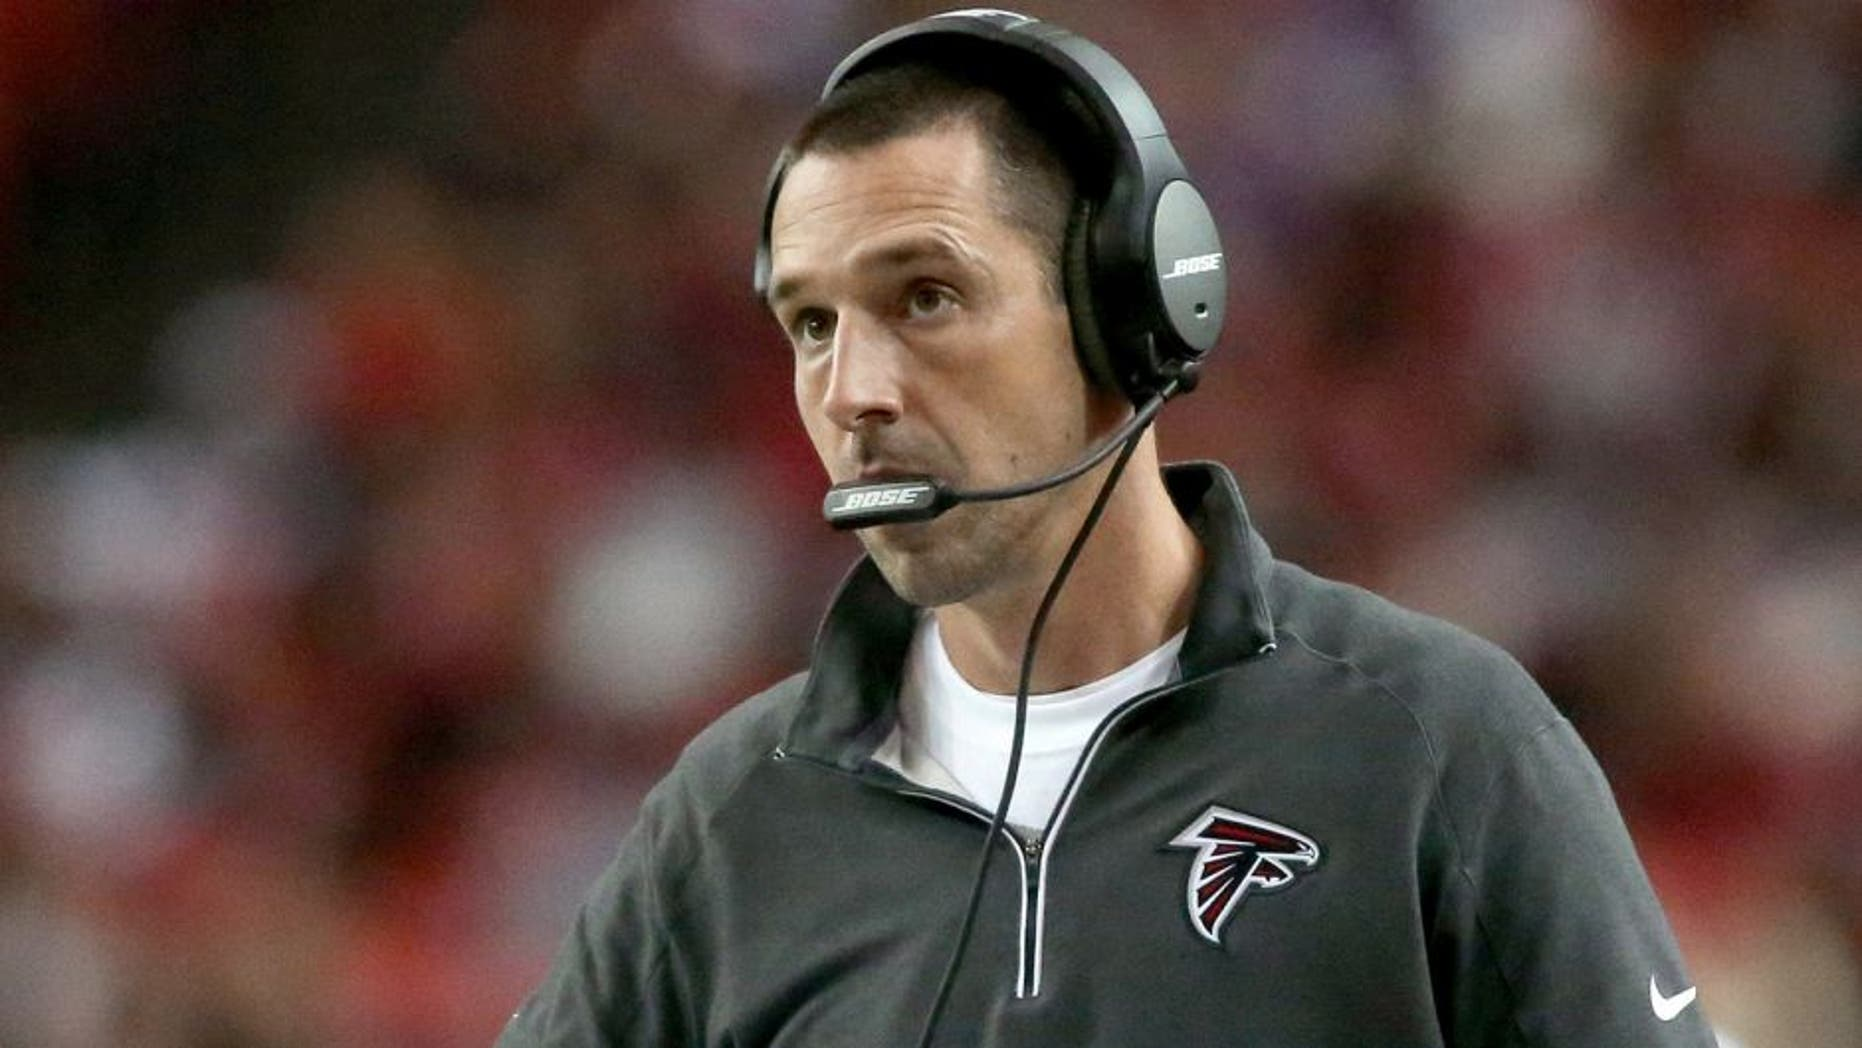 Nov 29, 2015; Atlanta, GA, USA; Atlanta Falcons offensive coordinator Kyle Shanahan is shown on the sideline in the third quarter of their game against the Minnesota Vikings at the Georgia Dome. The Vikings won 20-10. Mandatory Credit: Jason Getz-USA TODAY Sports